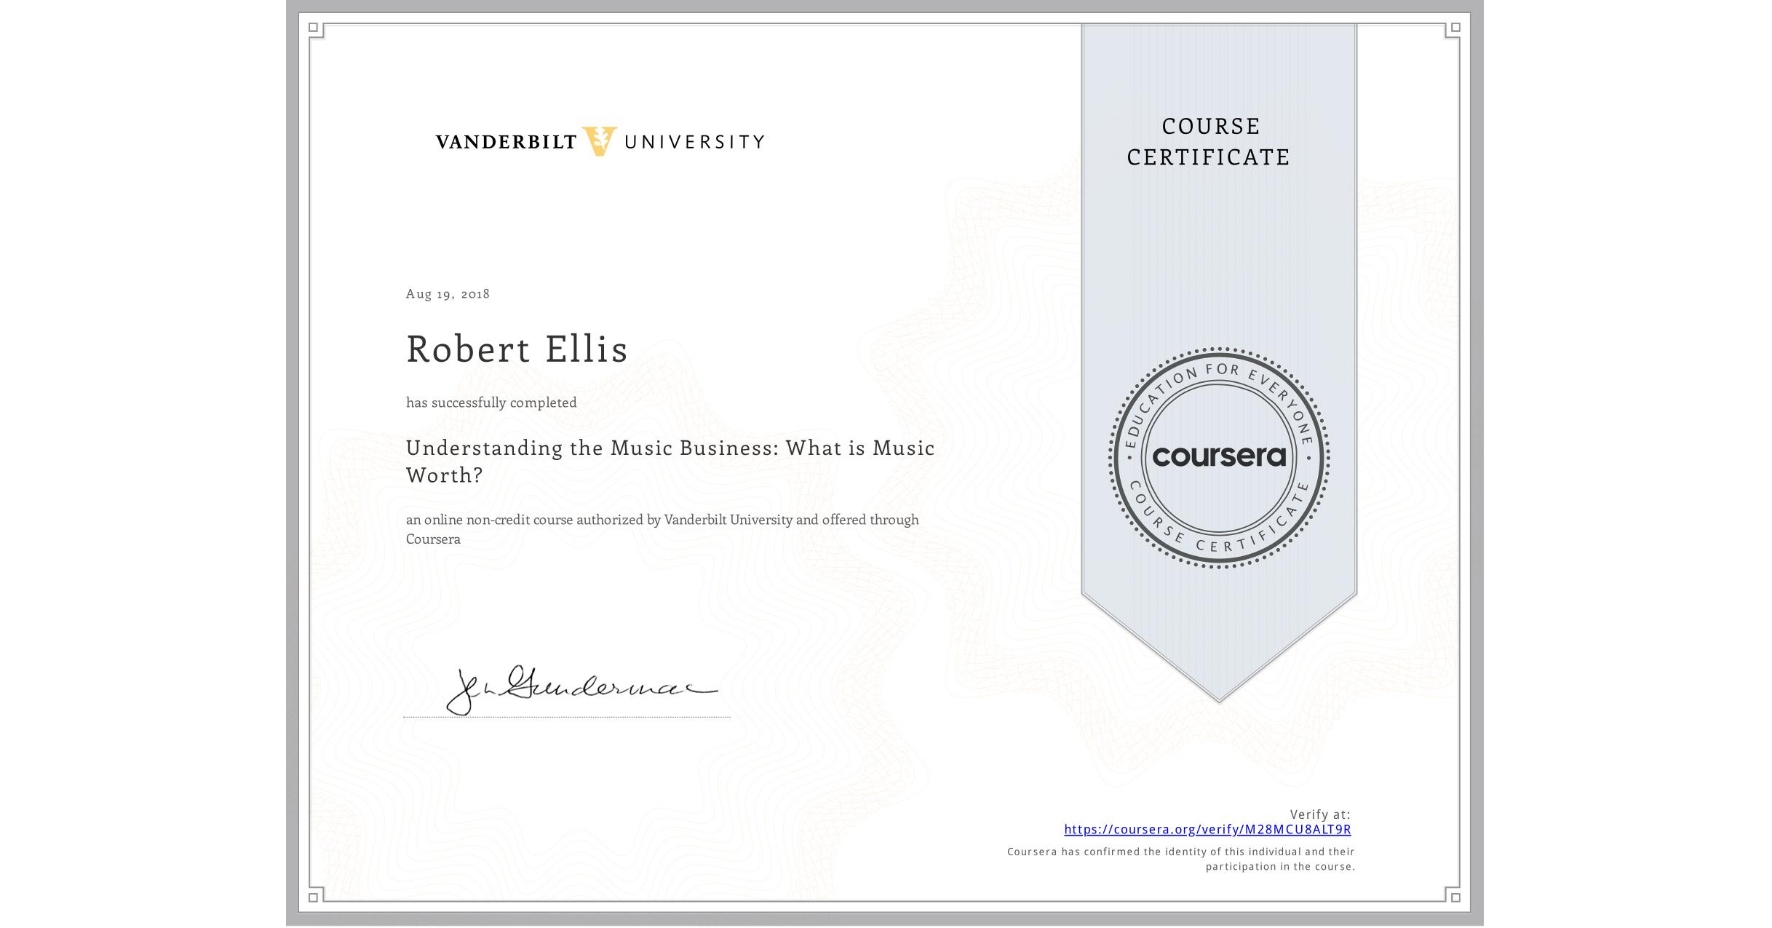 View certificate for Robert Ellis, Understanding the Music Business: What is Music Worth?, an online non-credit course authorized by Vanderbilt University and offered through Coursera